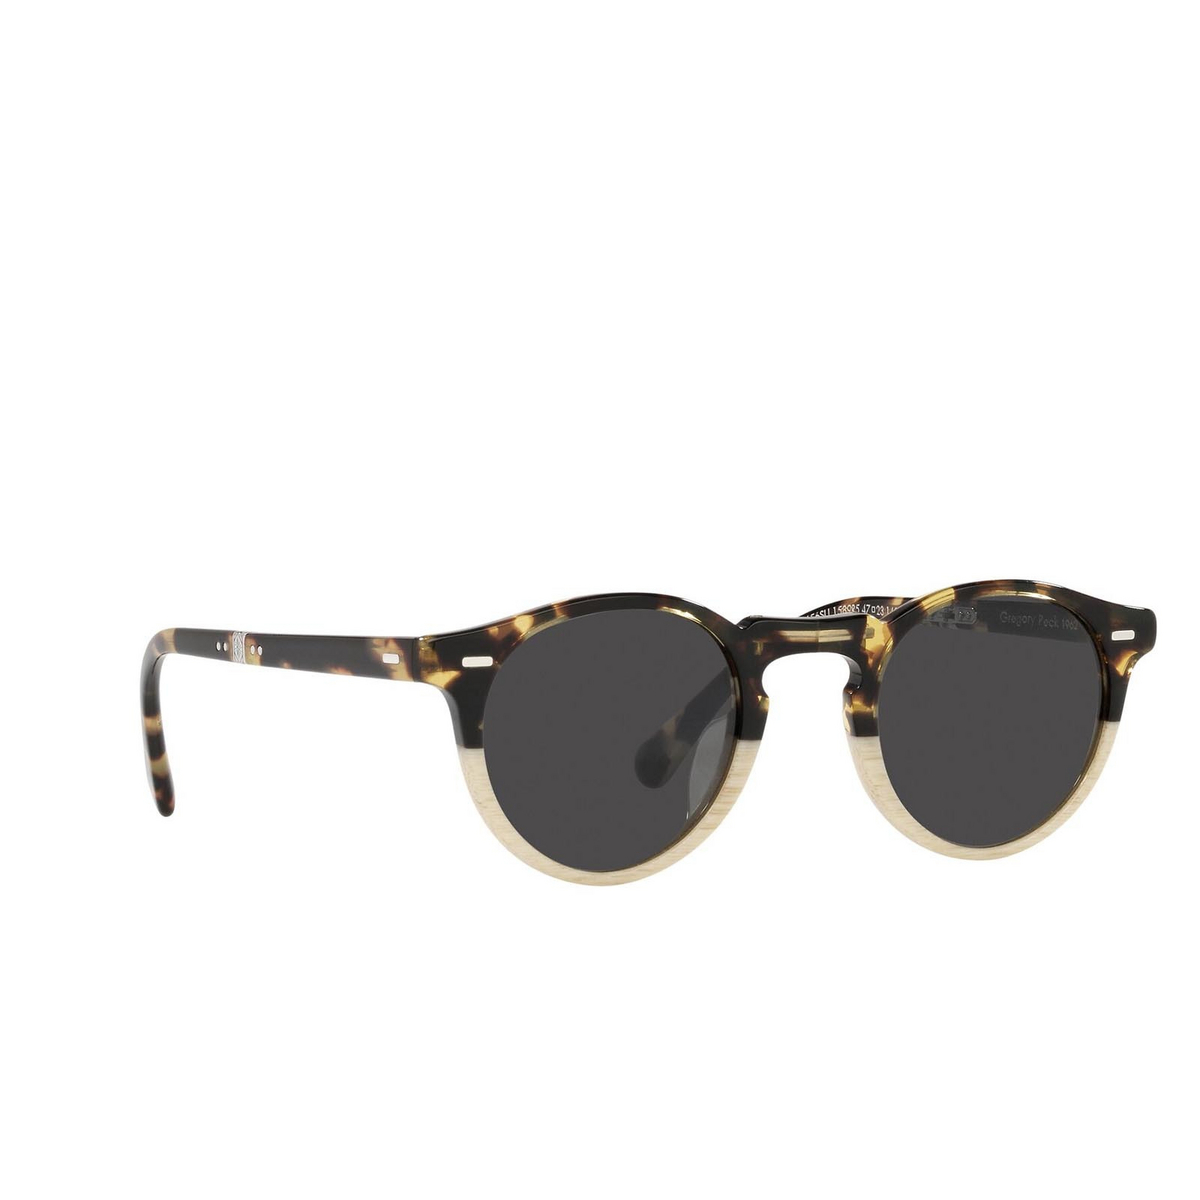 Oliver Peoples® Round Sunglasses: Gregory Peck 1962 OV5456SU color Dtb/beige Gradient 1589R5 - three-quarters view.